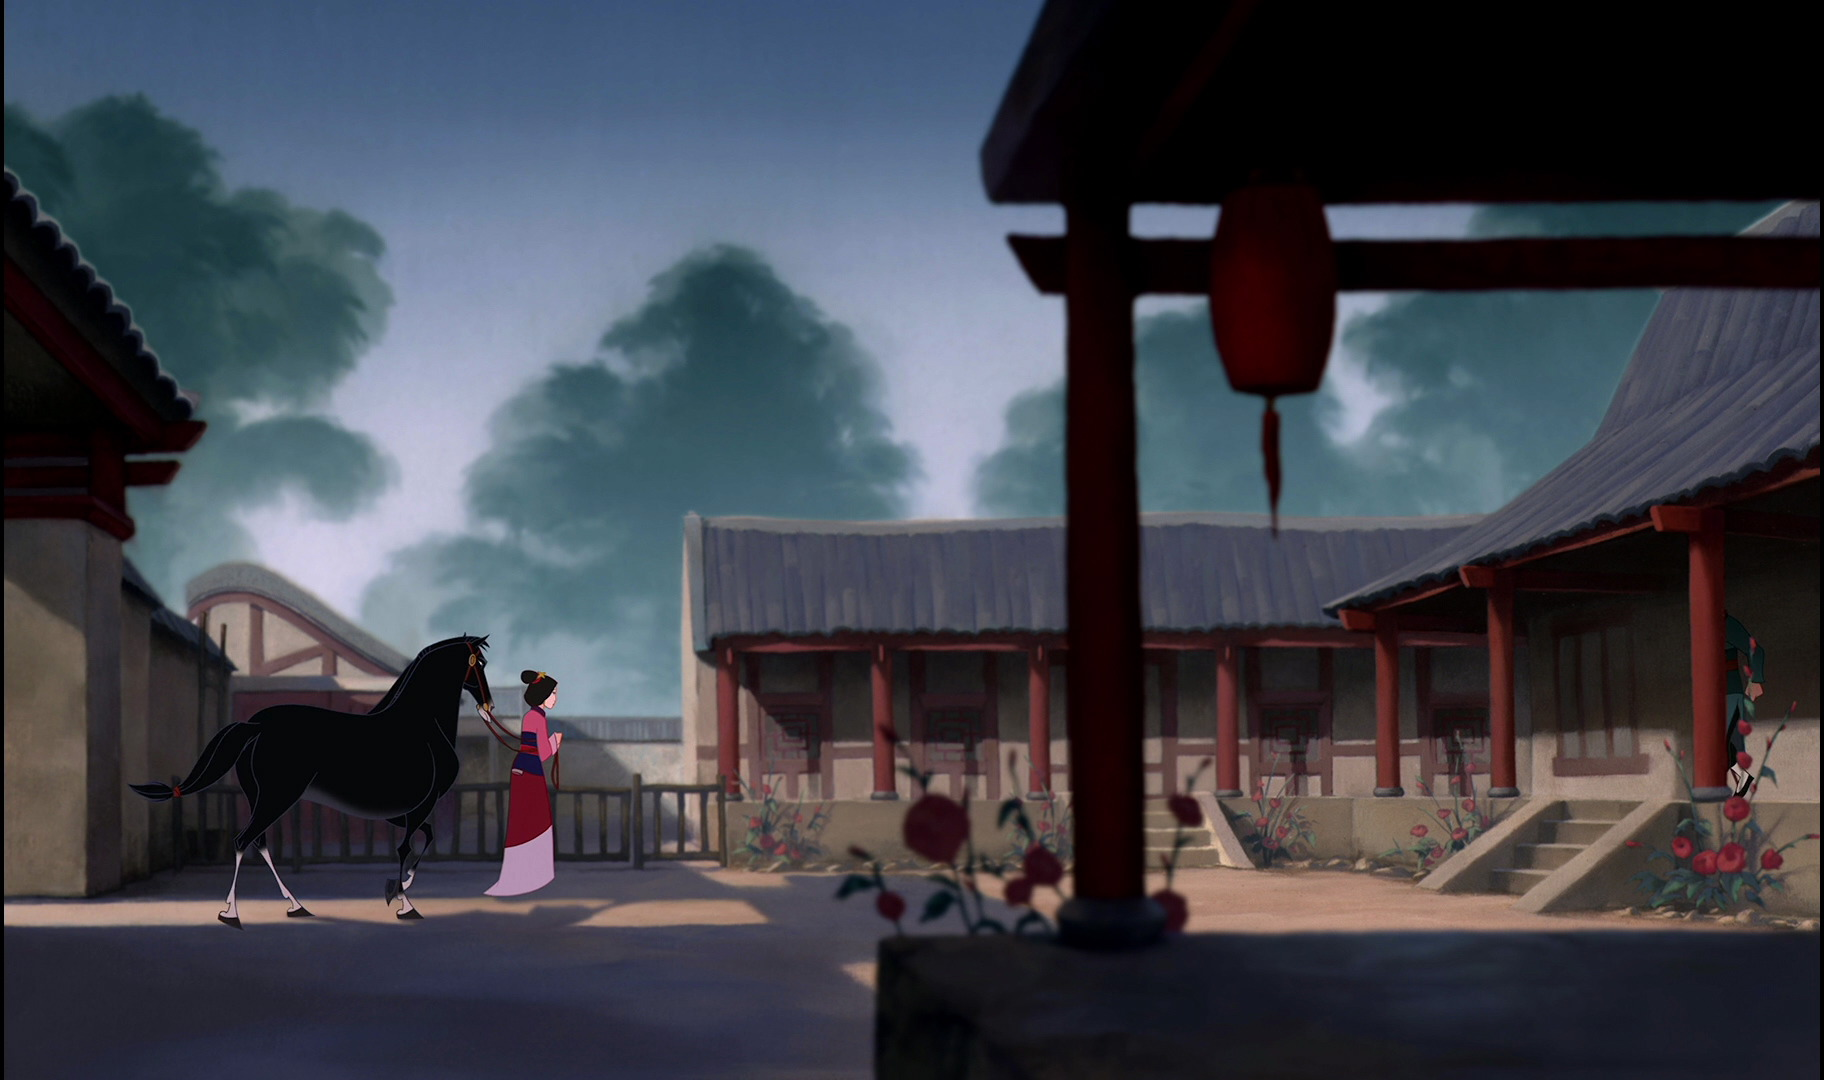 The Most Beautiful Shots in The History of Disney  Thinking Animation